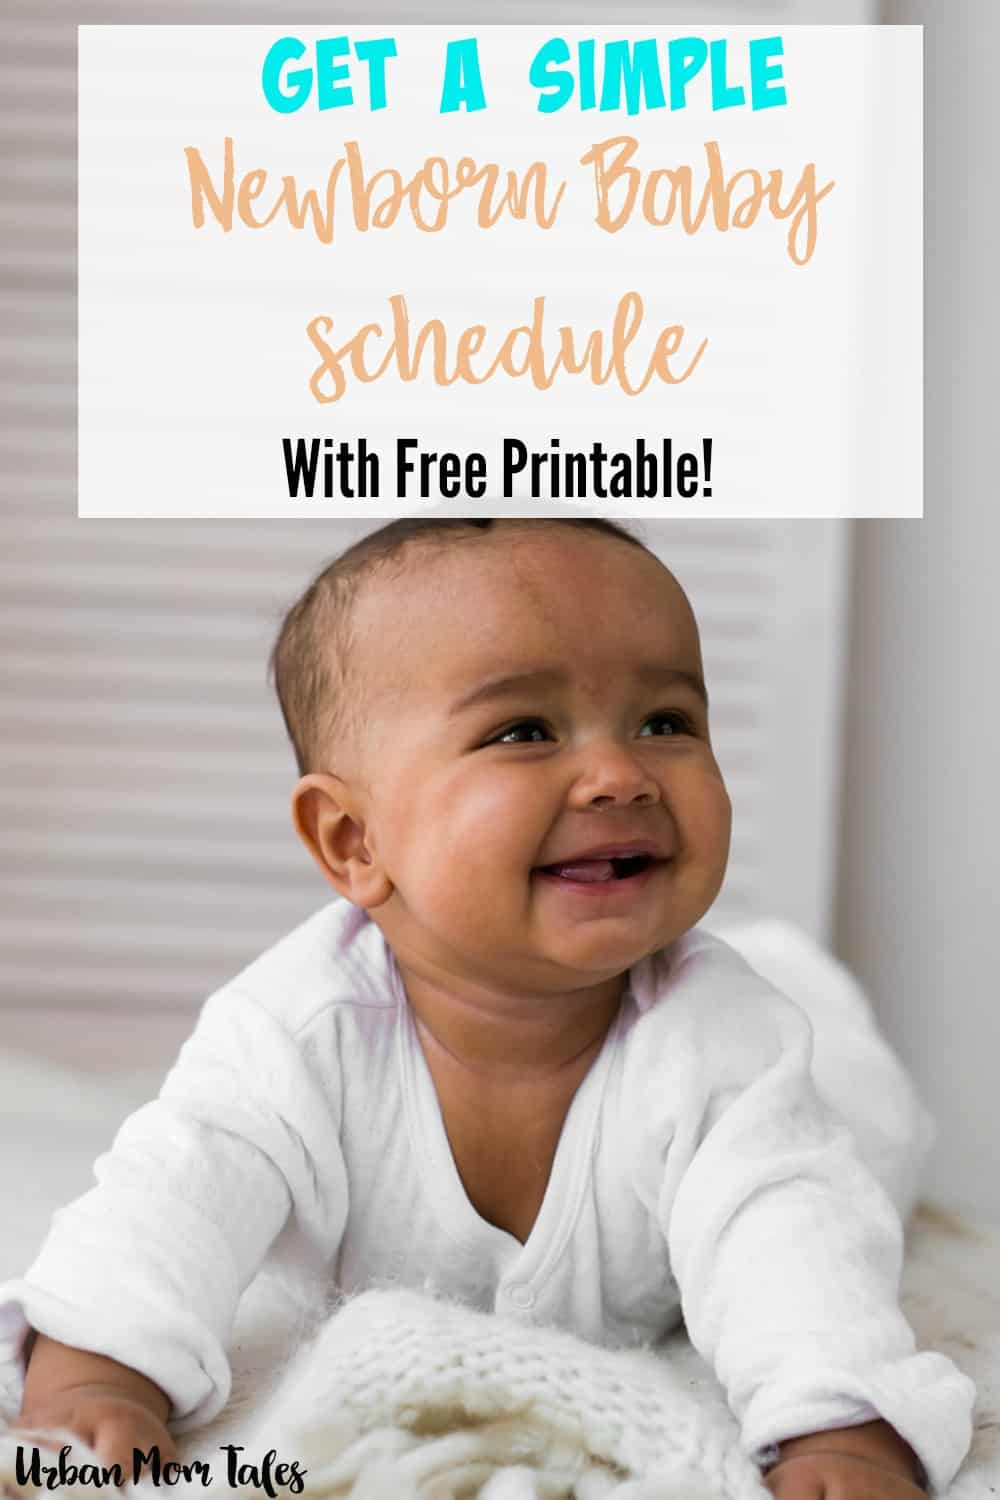 Get a simple newborn baby schedule or newborn baby routine that is easy to follow and helps promote great sleepers! Includes free sample newborn schedule.